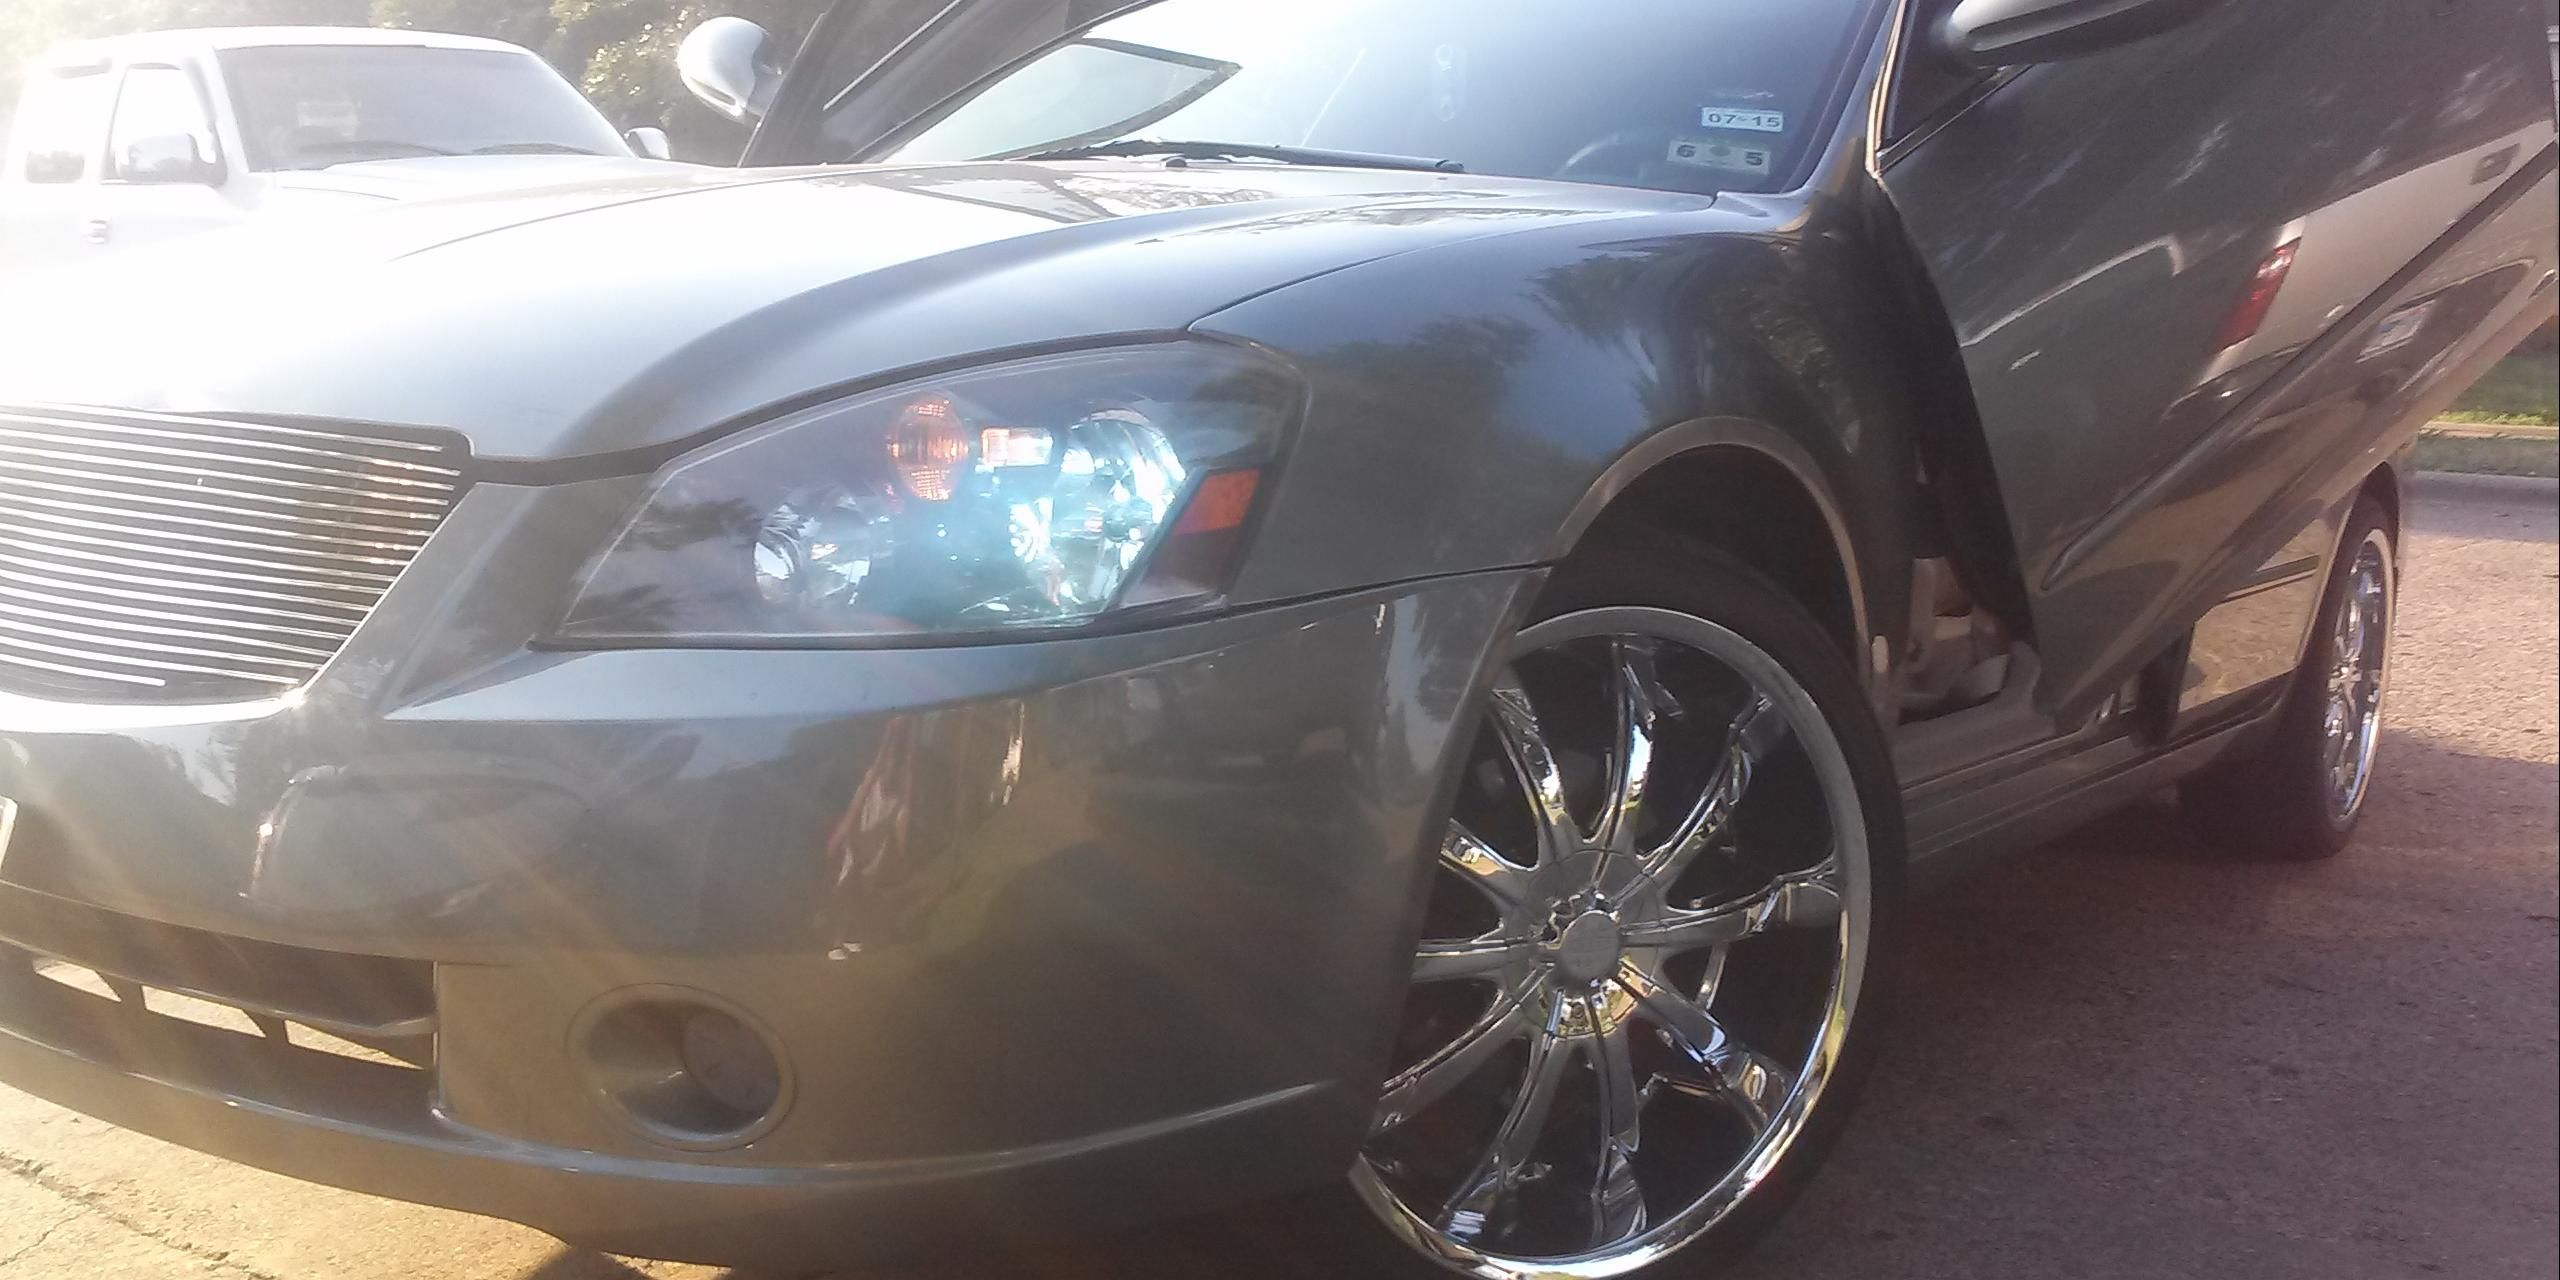 Check Out Customized Rodolfo412u0027s 2006 Nissan Altima 2.5 S Photos, Parts,  Specs,